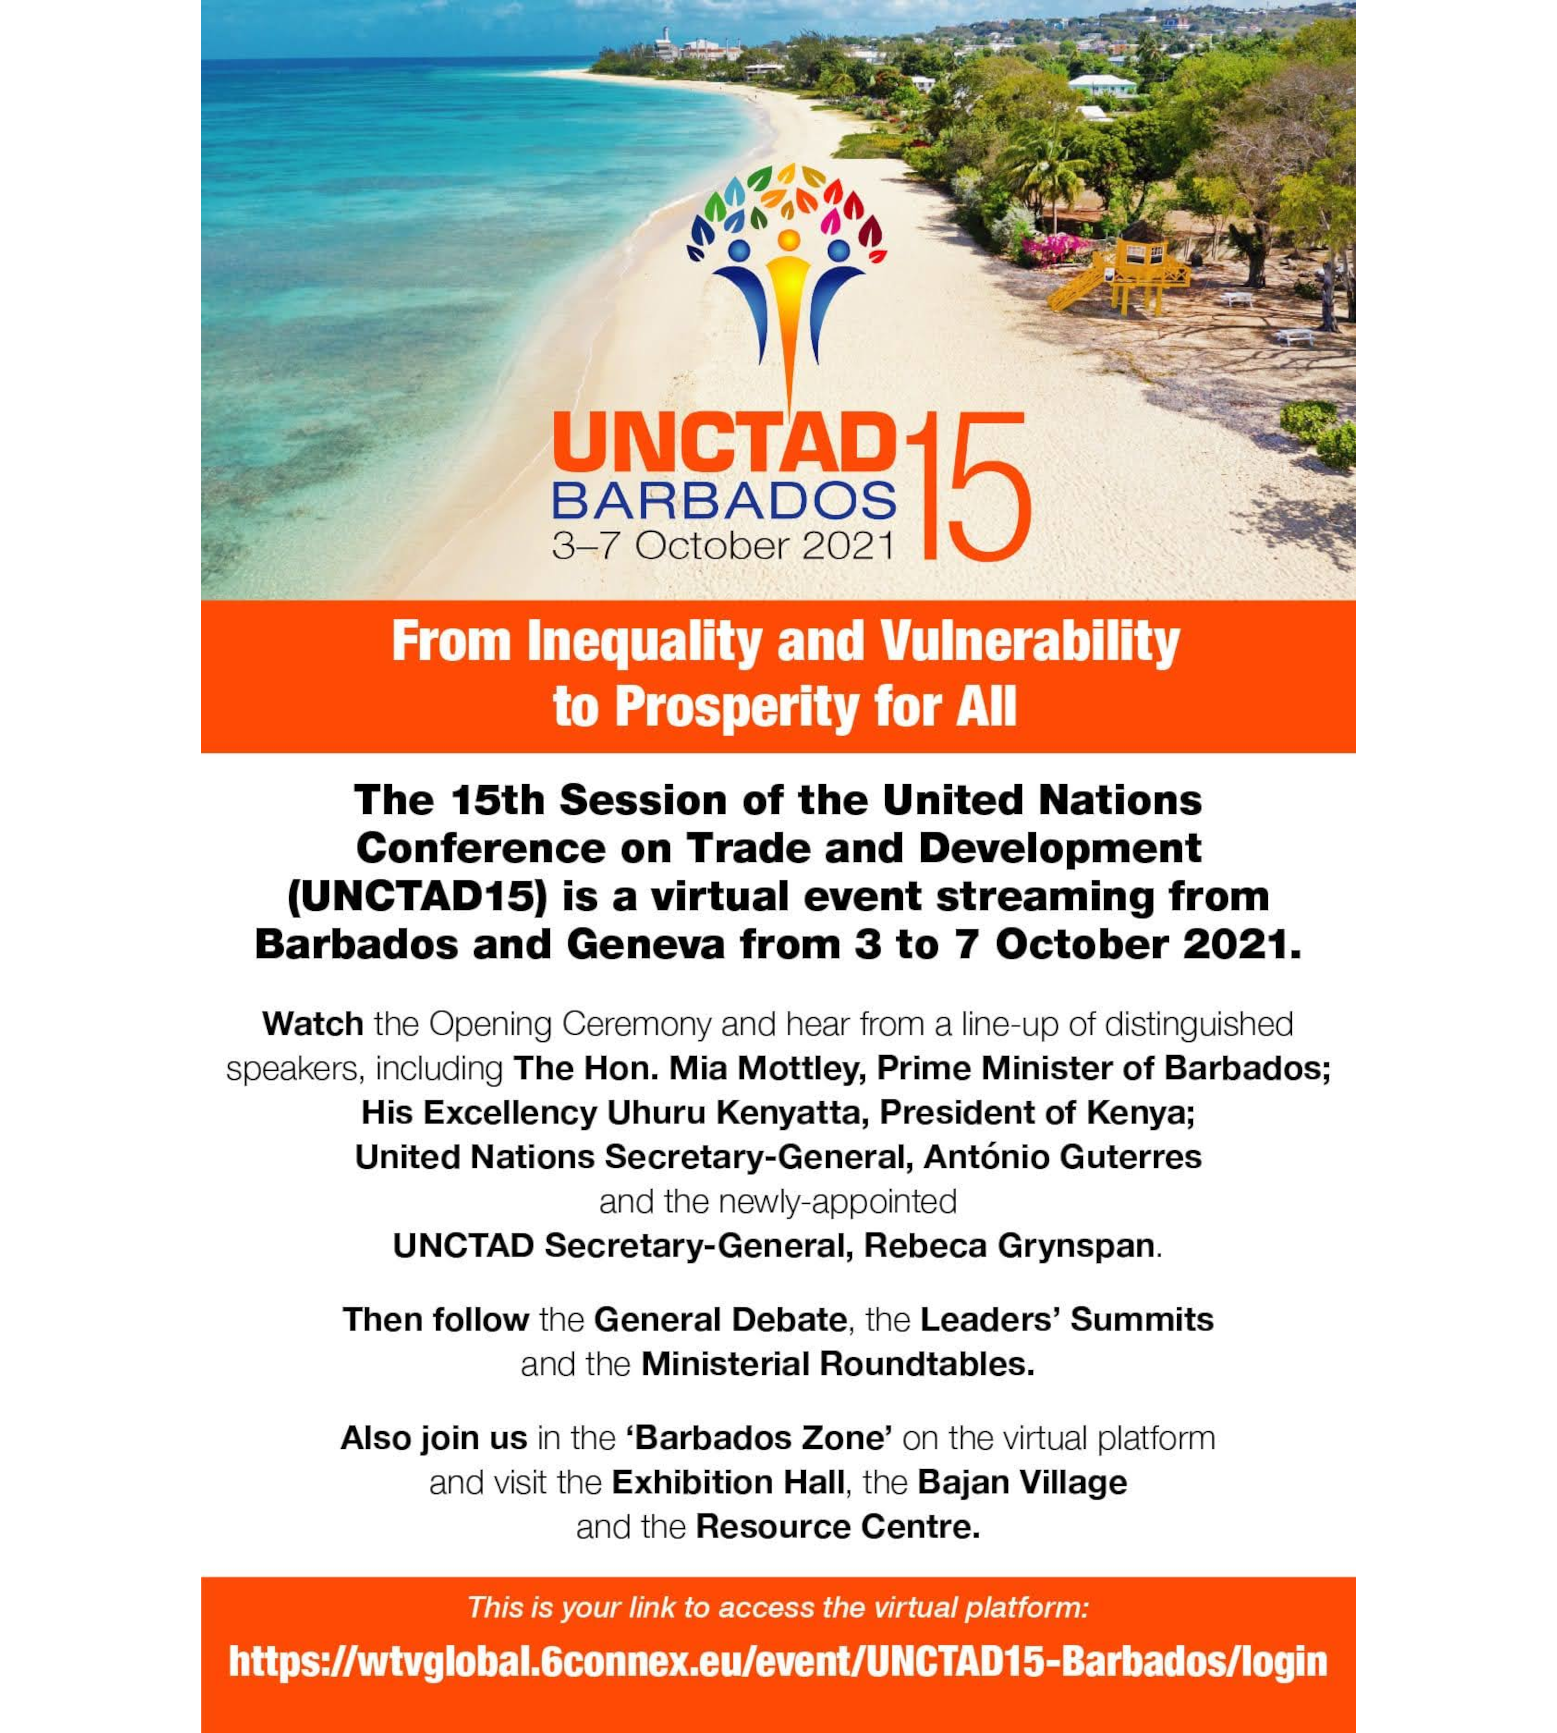 The United Nations Conference on Trade and Development (UNCTAD15)